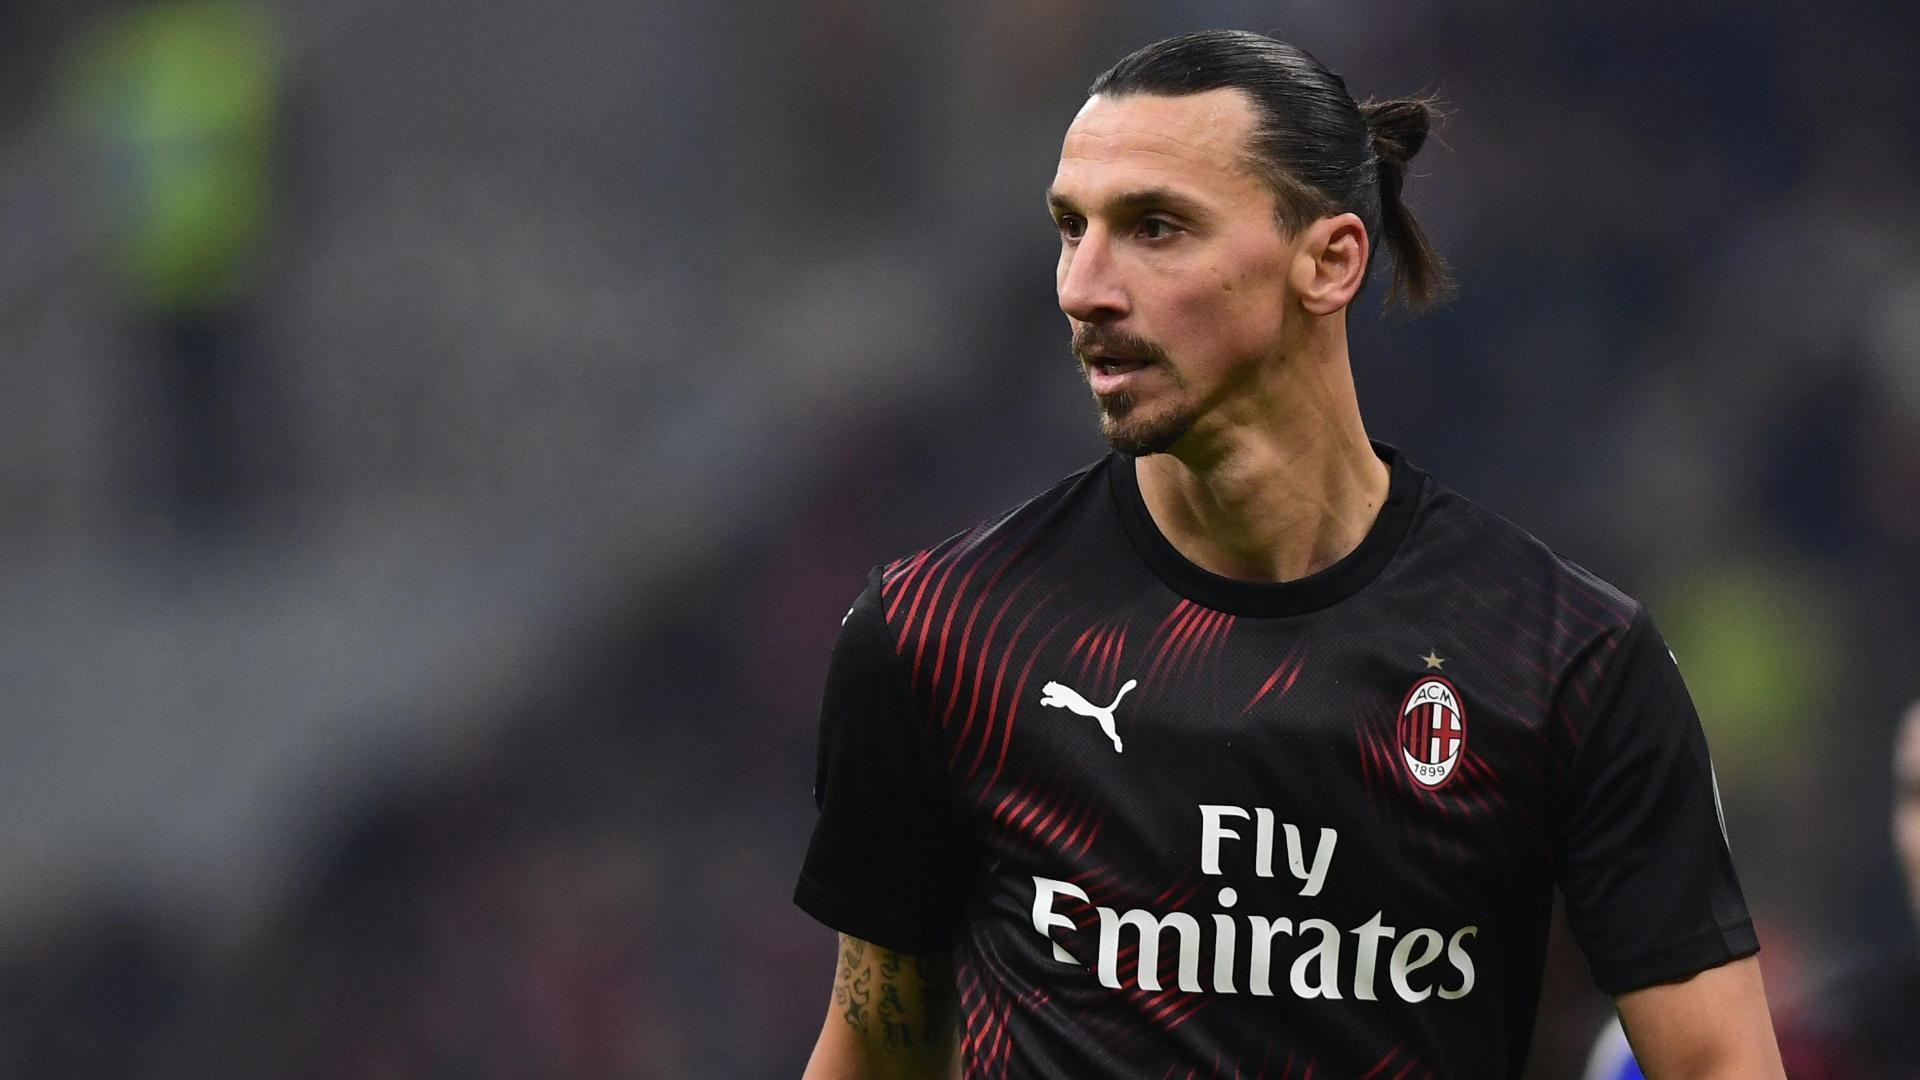 San Siro erupts as Zlatan subs on for Milan